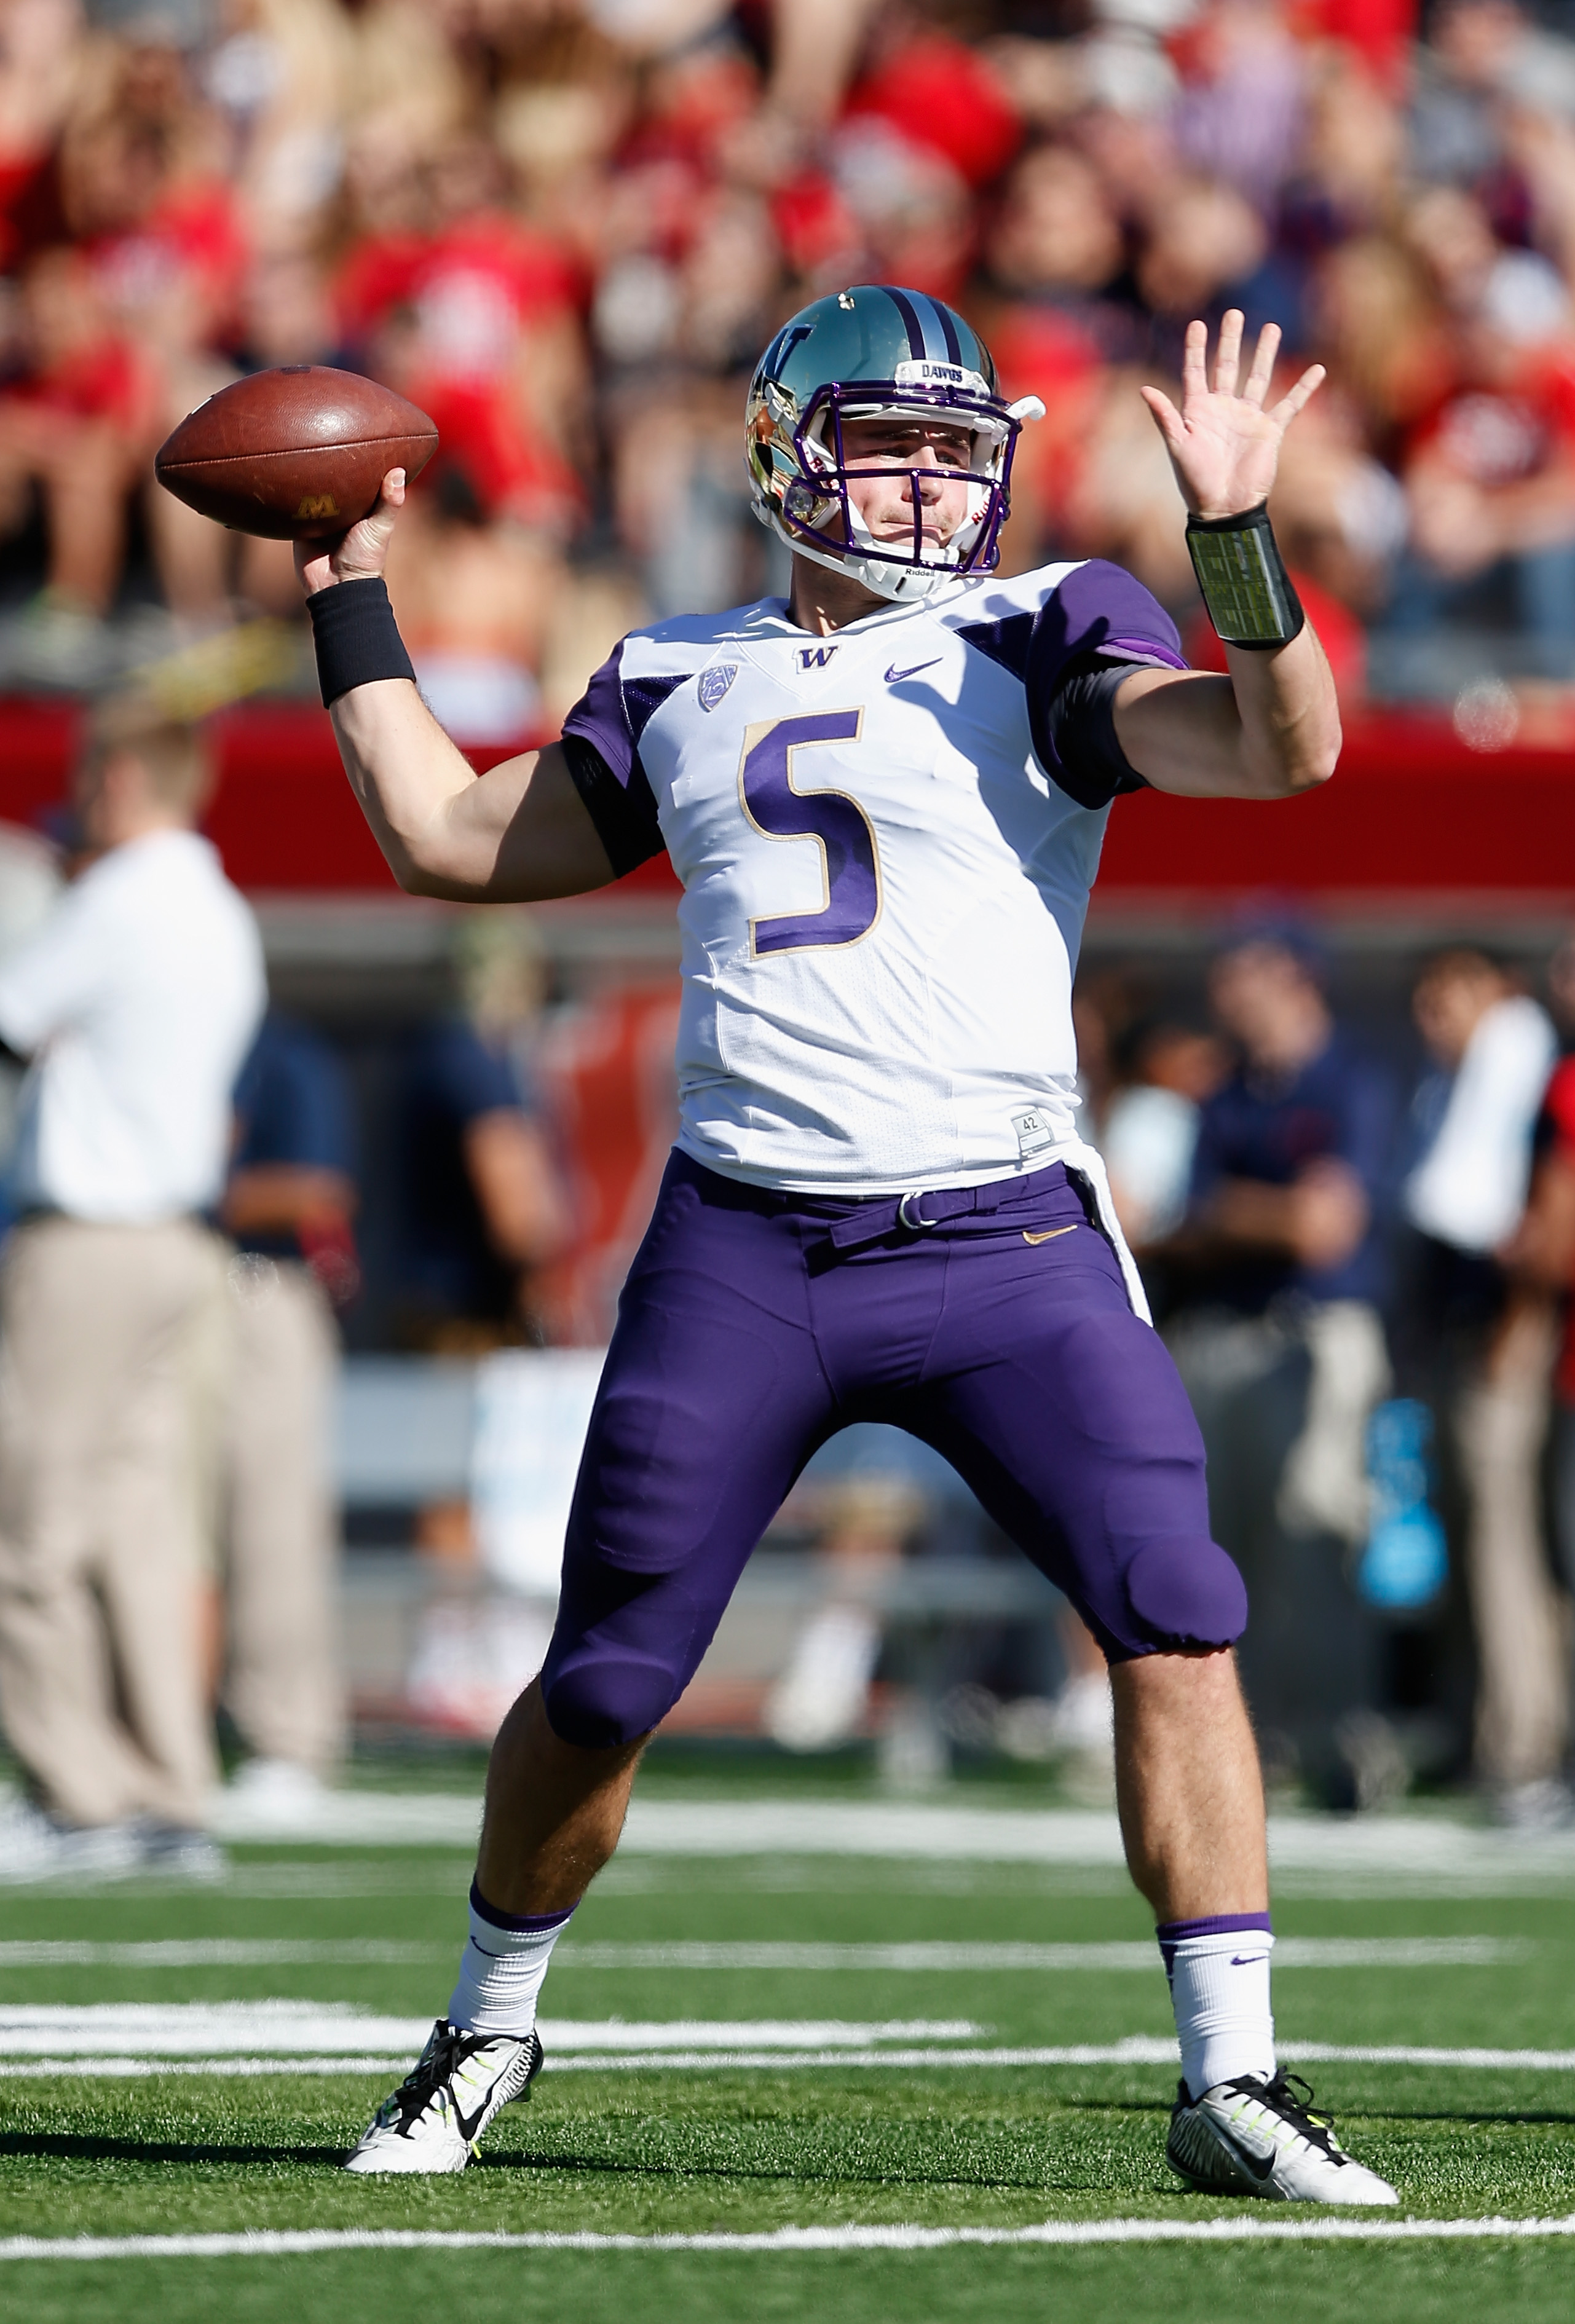 The UW QB Debate is full on as we head into spring camp.